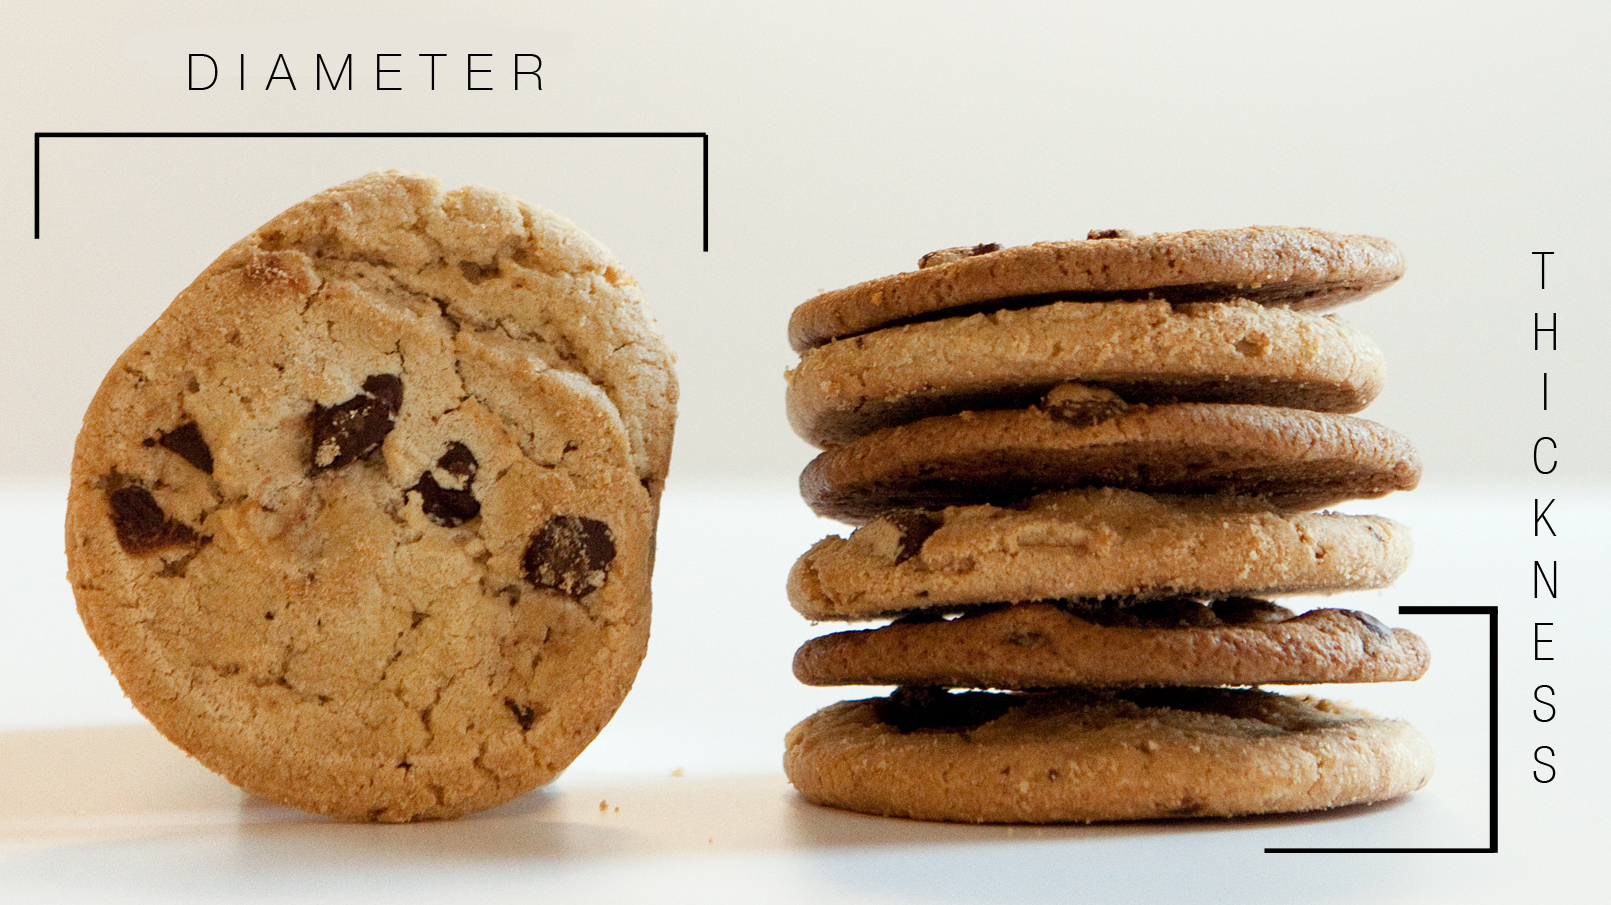 Engineering the perfect cookie: You can control the diameter and thickness of your favorite chocolate chip cookies by changing the temperature of the butter and the amount of flour in the dough. Photo: Morgan Walker/NPR